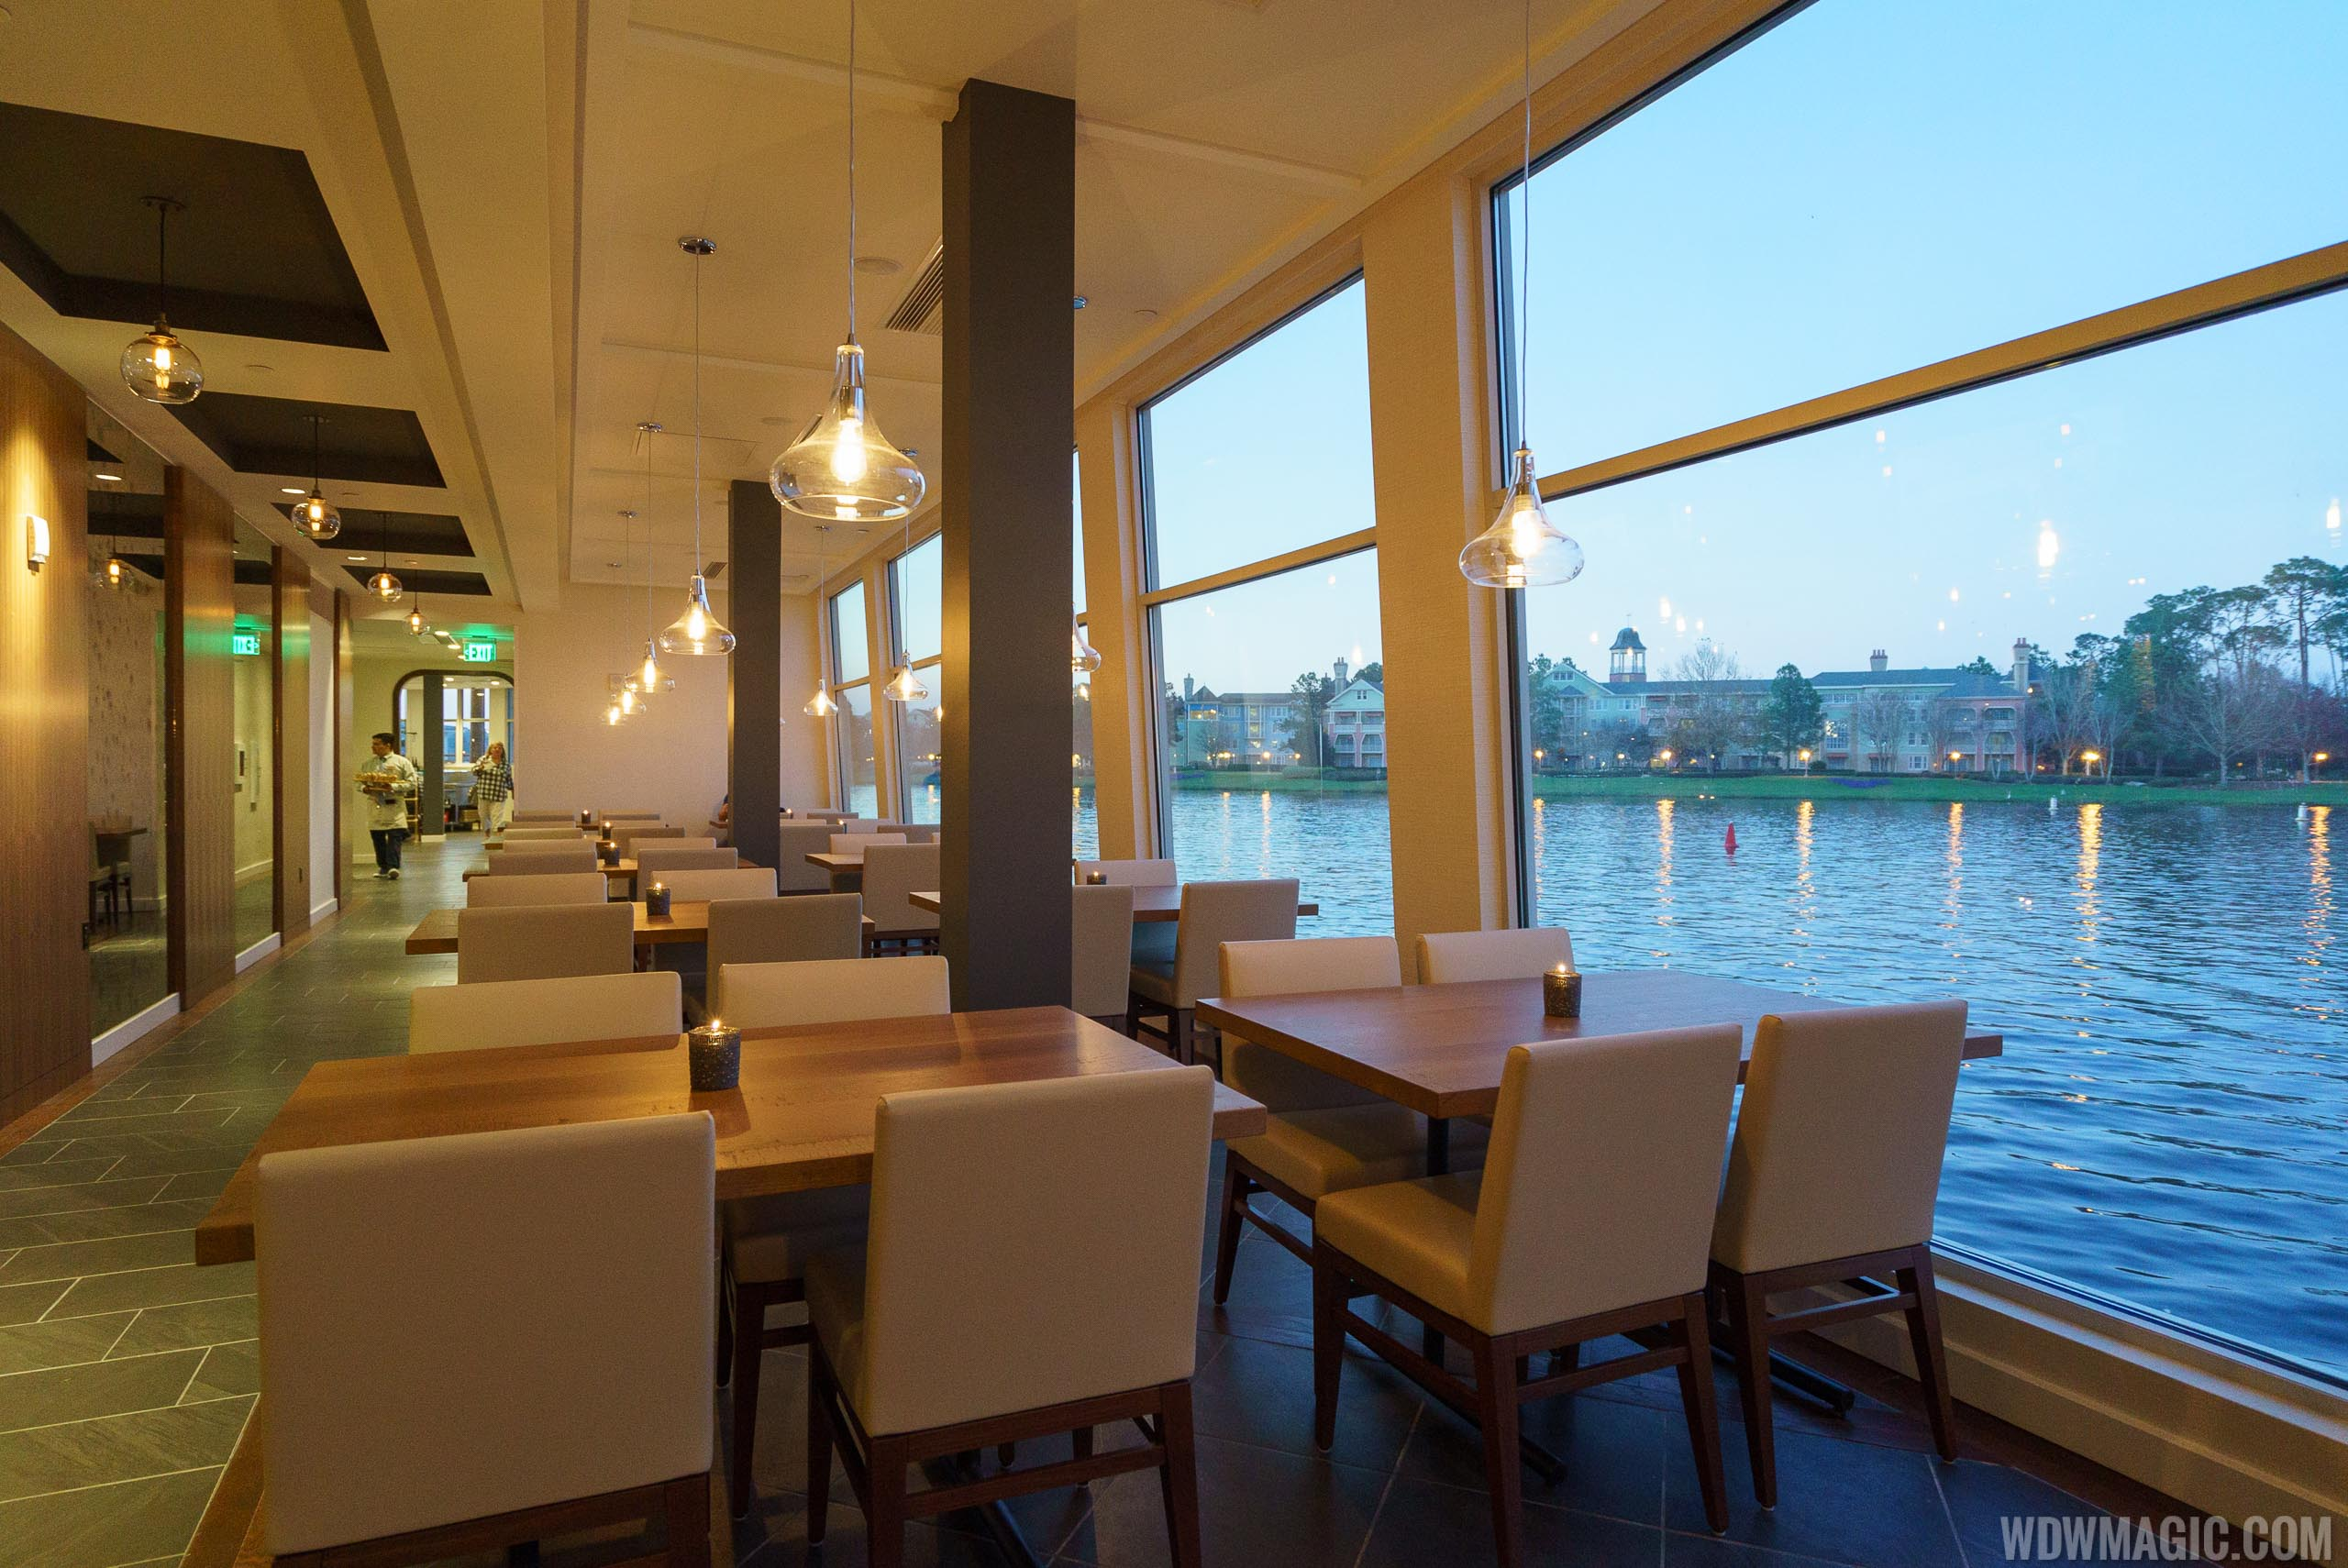 Paddlefish - Lower level waterside dining